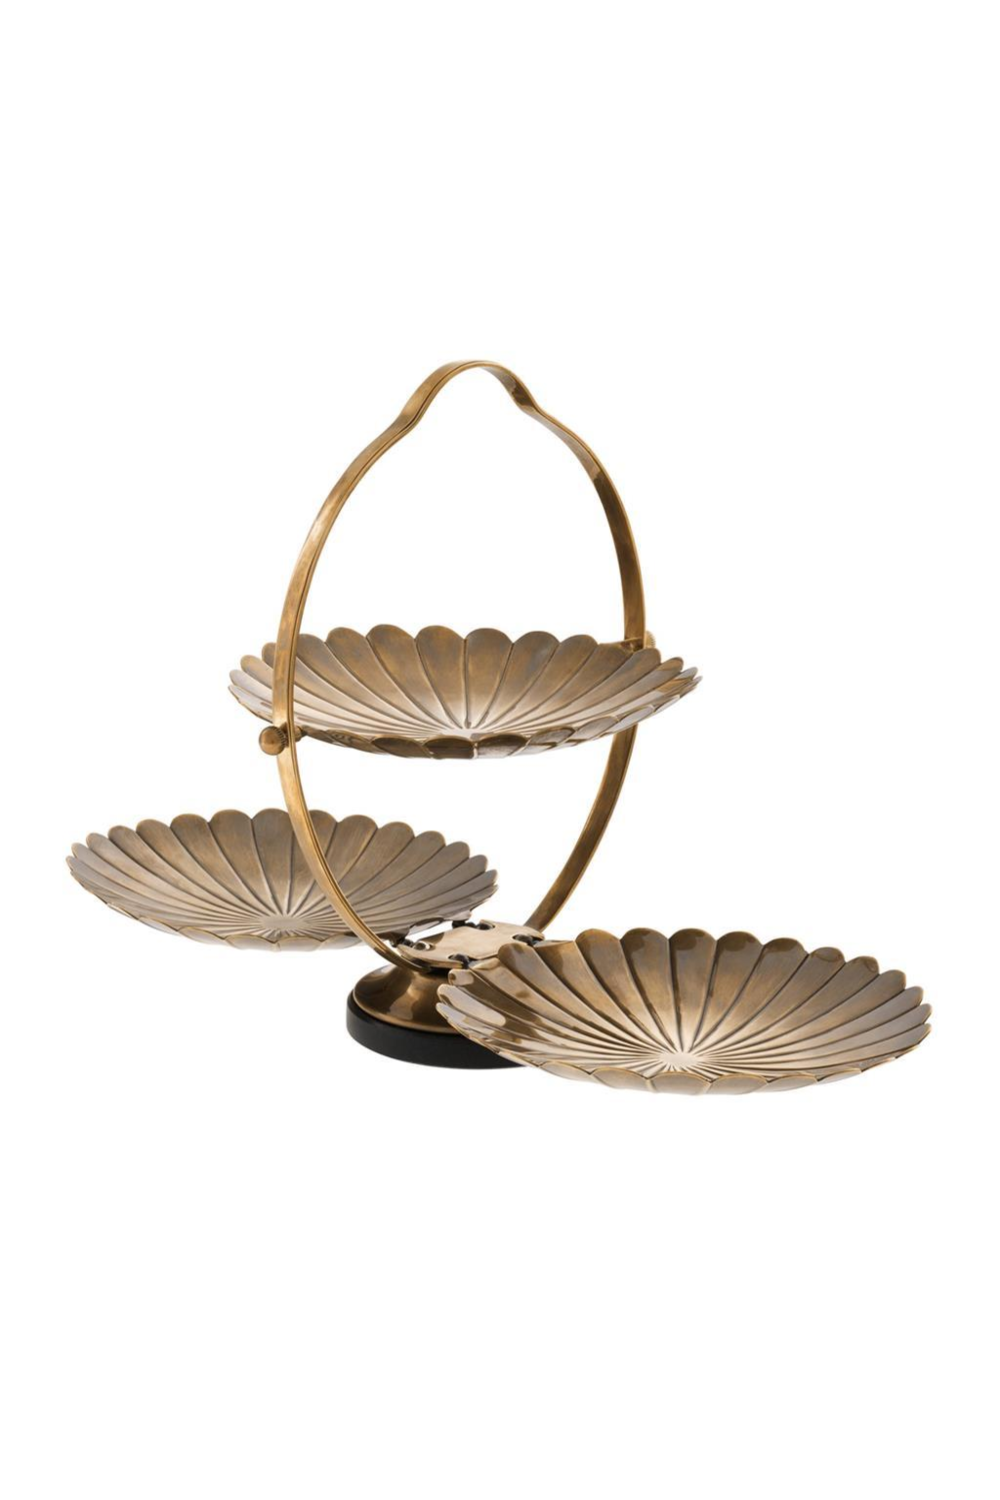 Gold Scalloped Tray | Eichholtz Beatrice | OROA Luxury Furniture